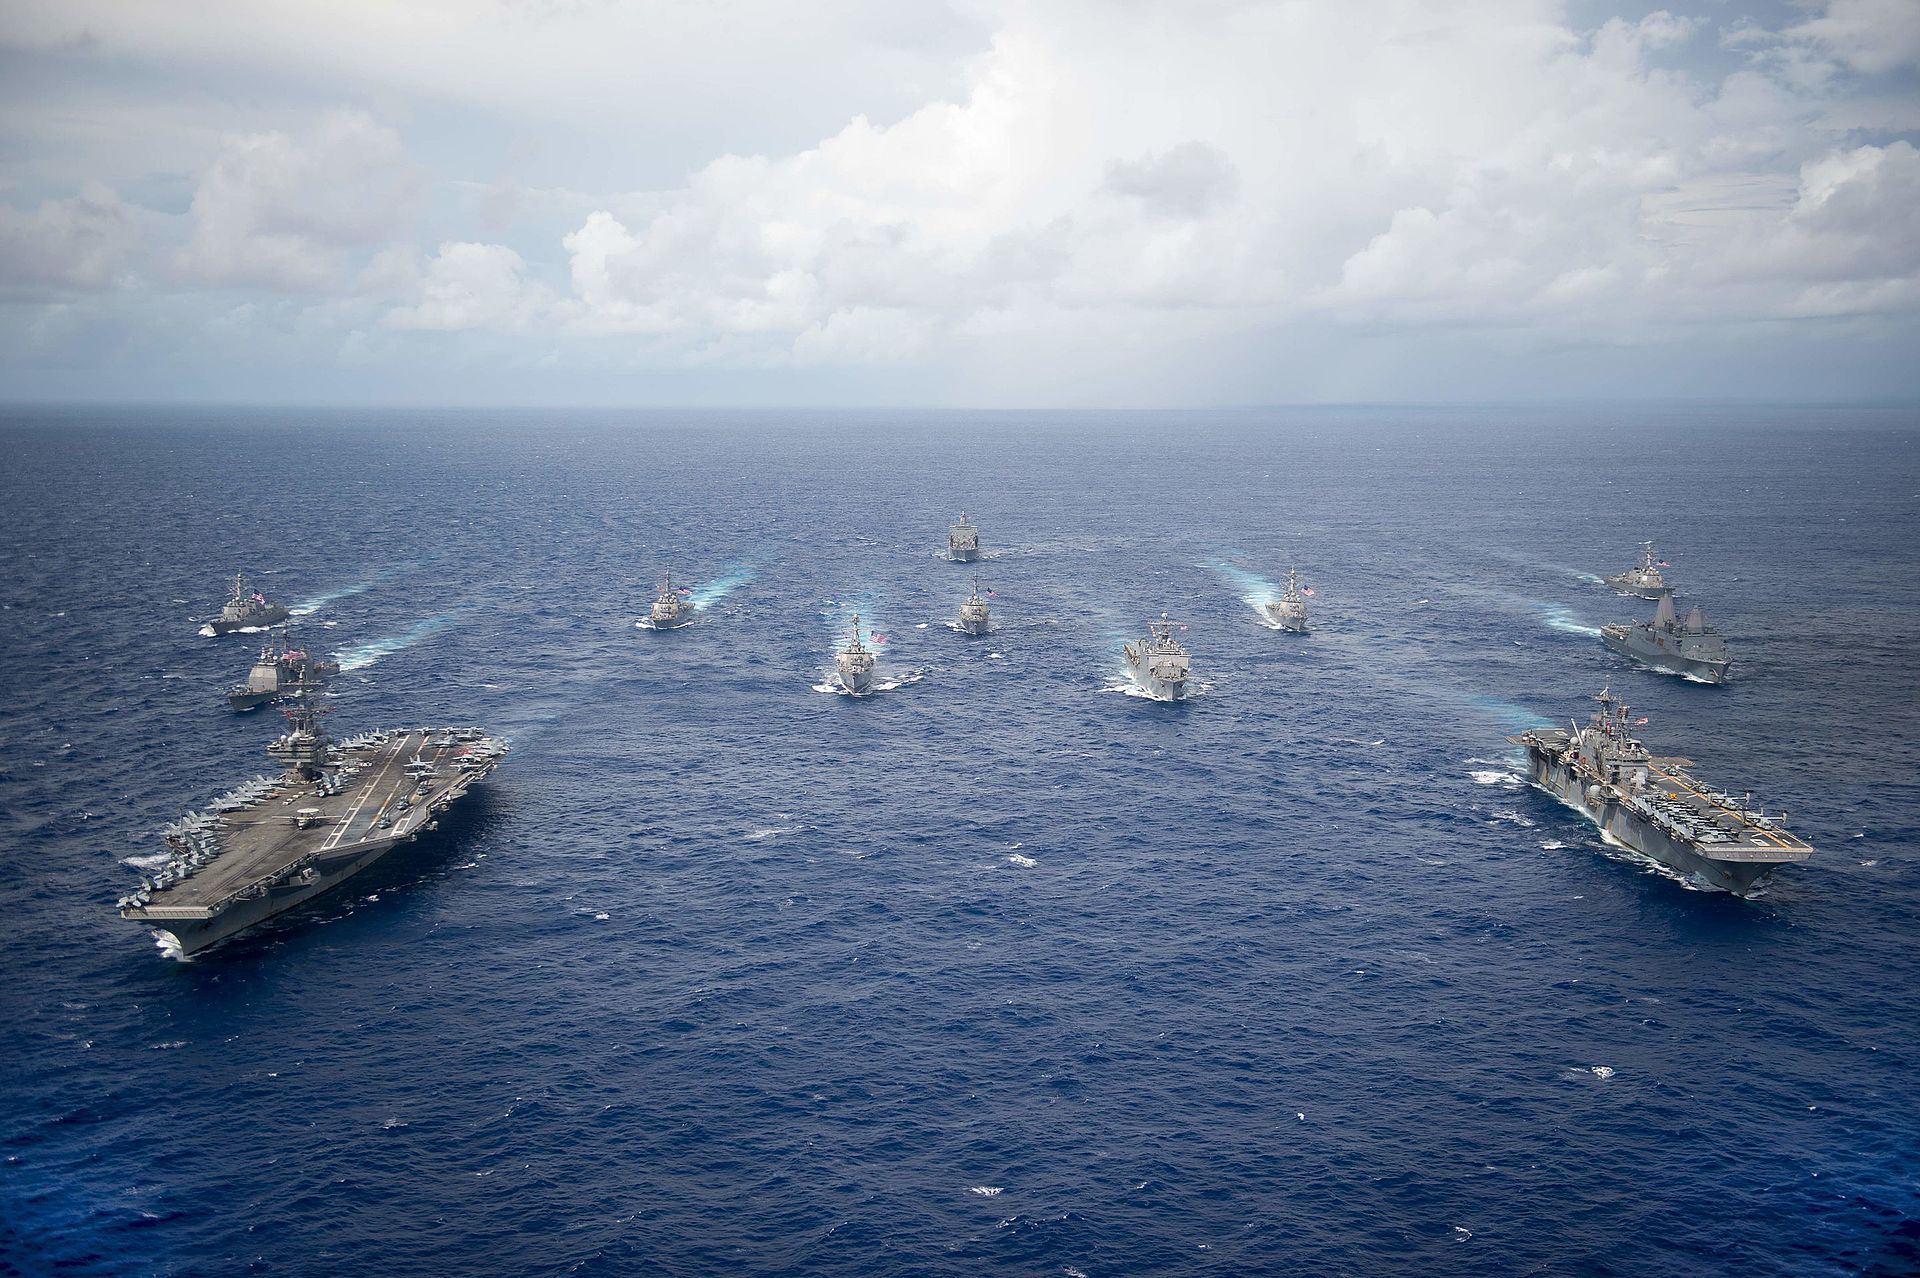 USS_Ronald_Reagan_leads_a_formation_of_Carrier_Strike_Group_Five_and_Expeditionary_Strike_Group_Seven_Ships._(29761493042)-2.jpg